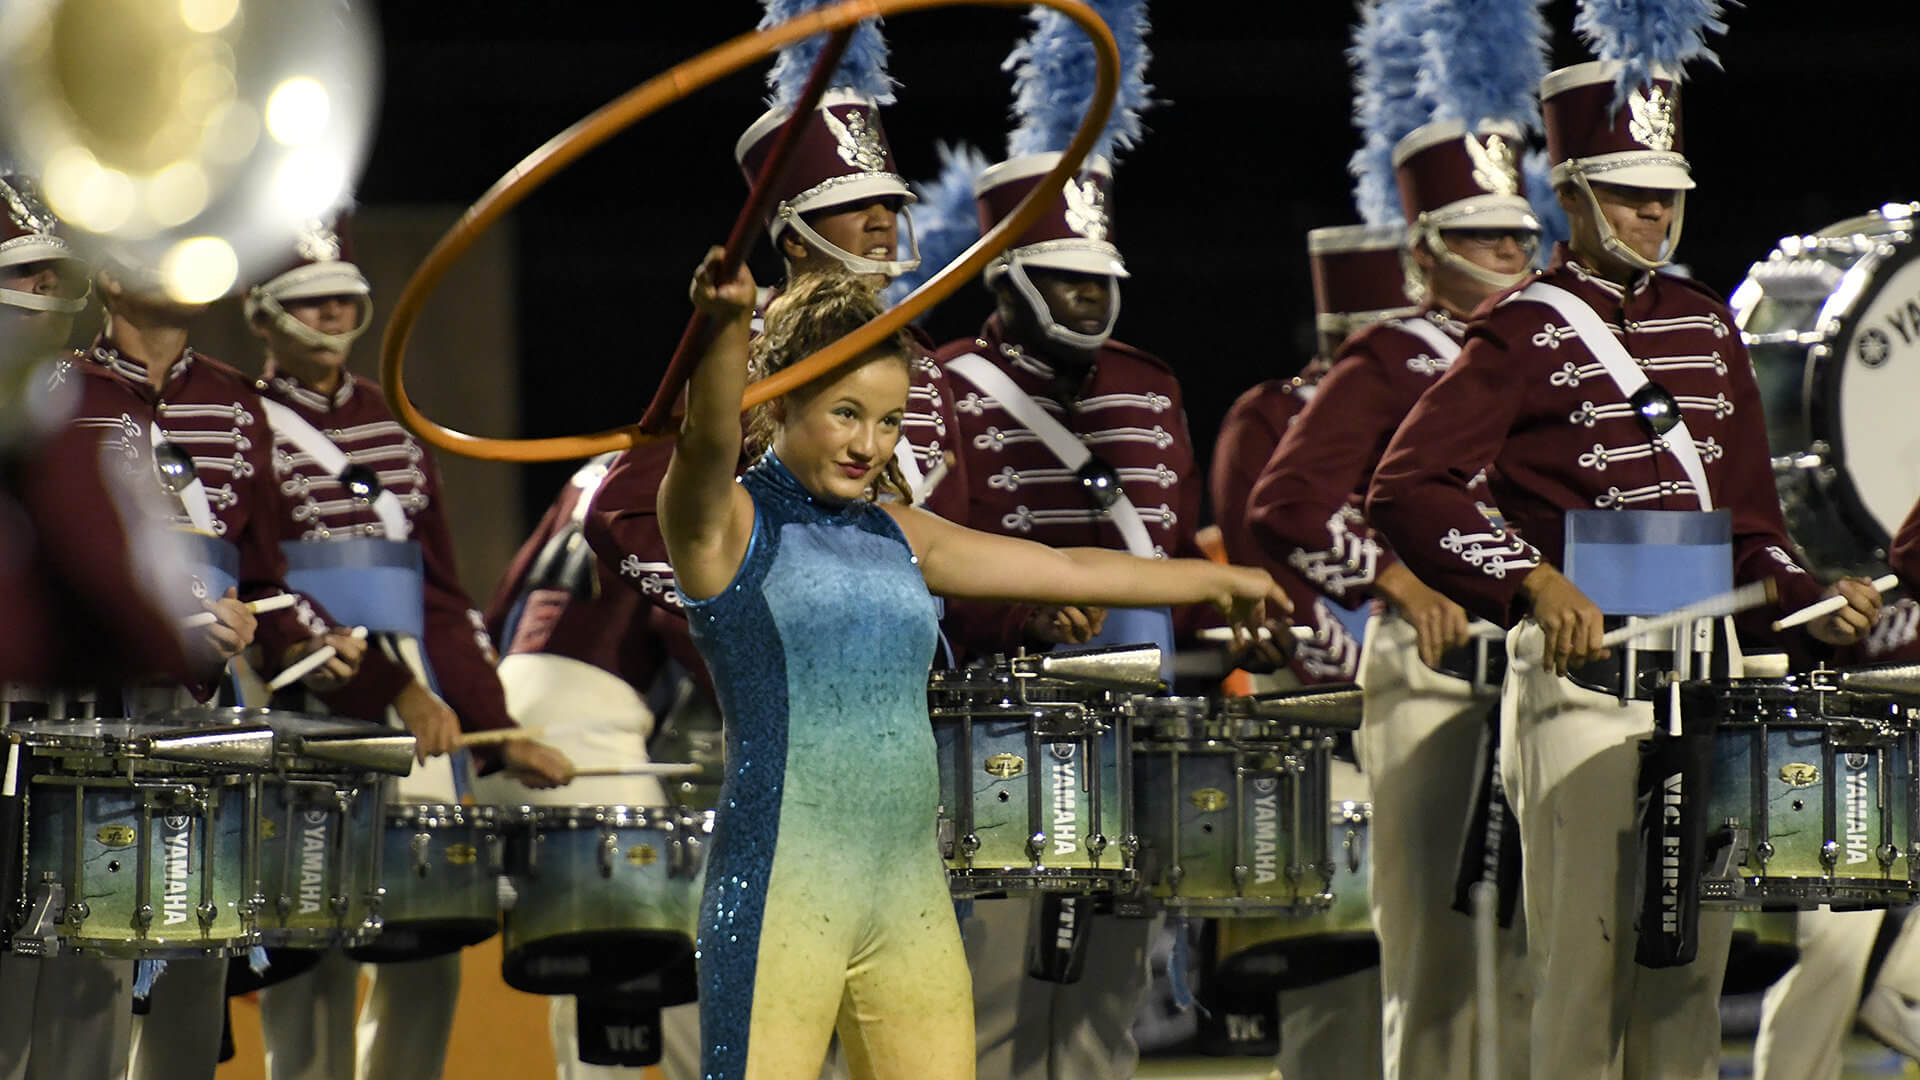 Drum corps season continues over Labor Day Weekend